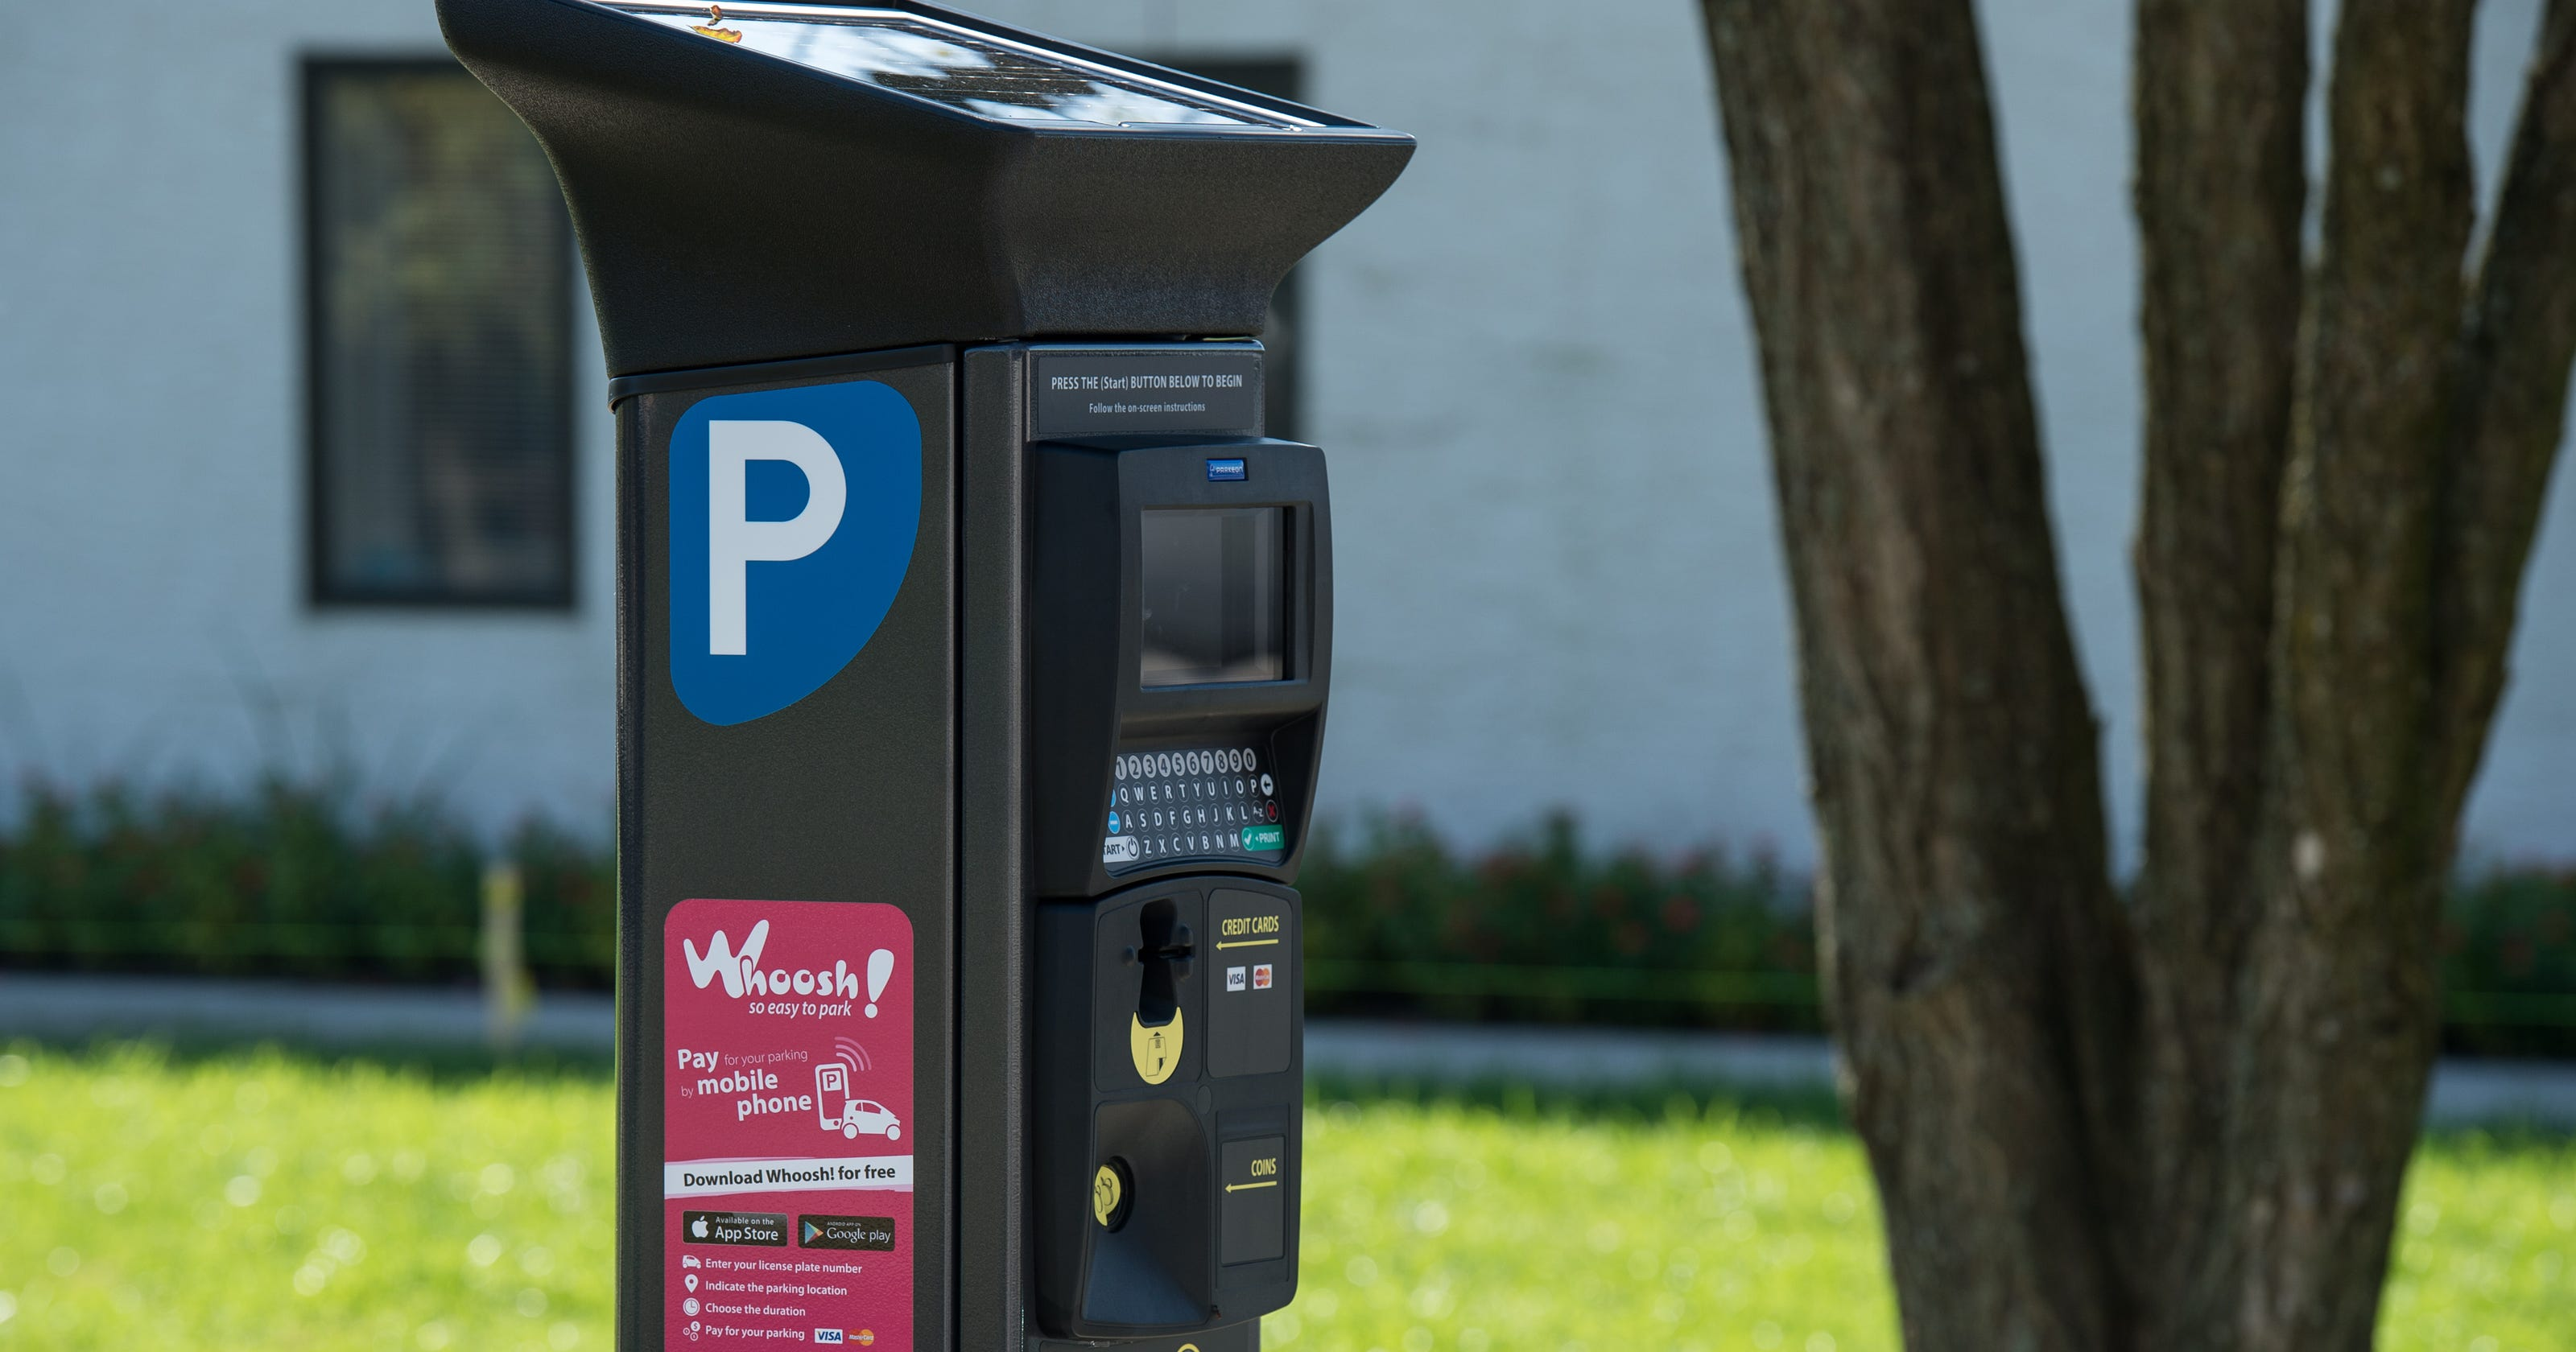 Parking fees may increase in downtown Salisbury